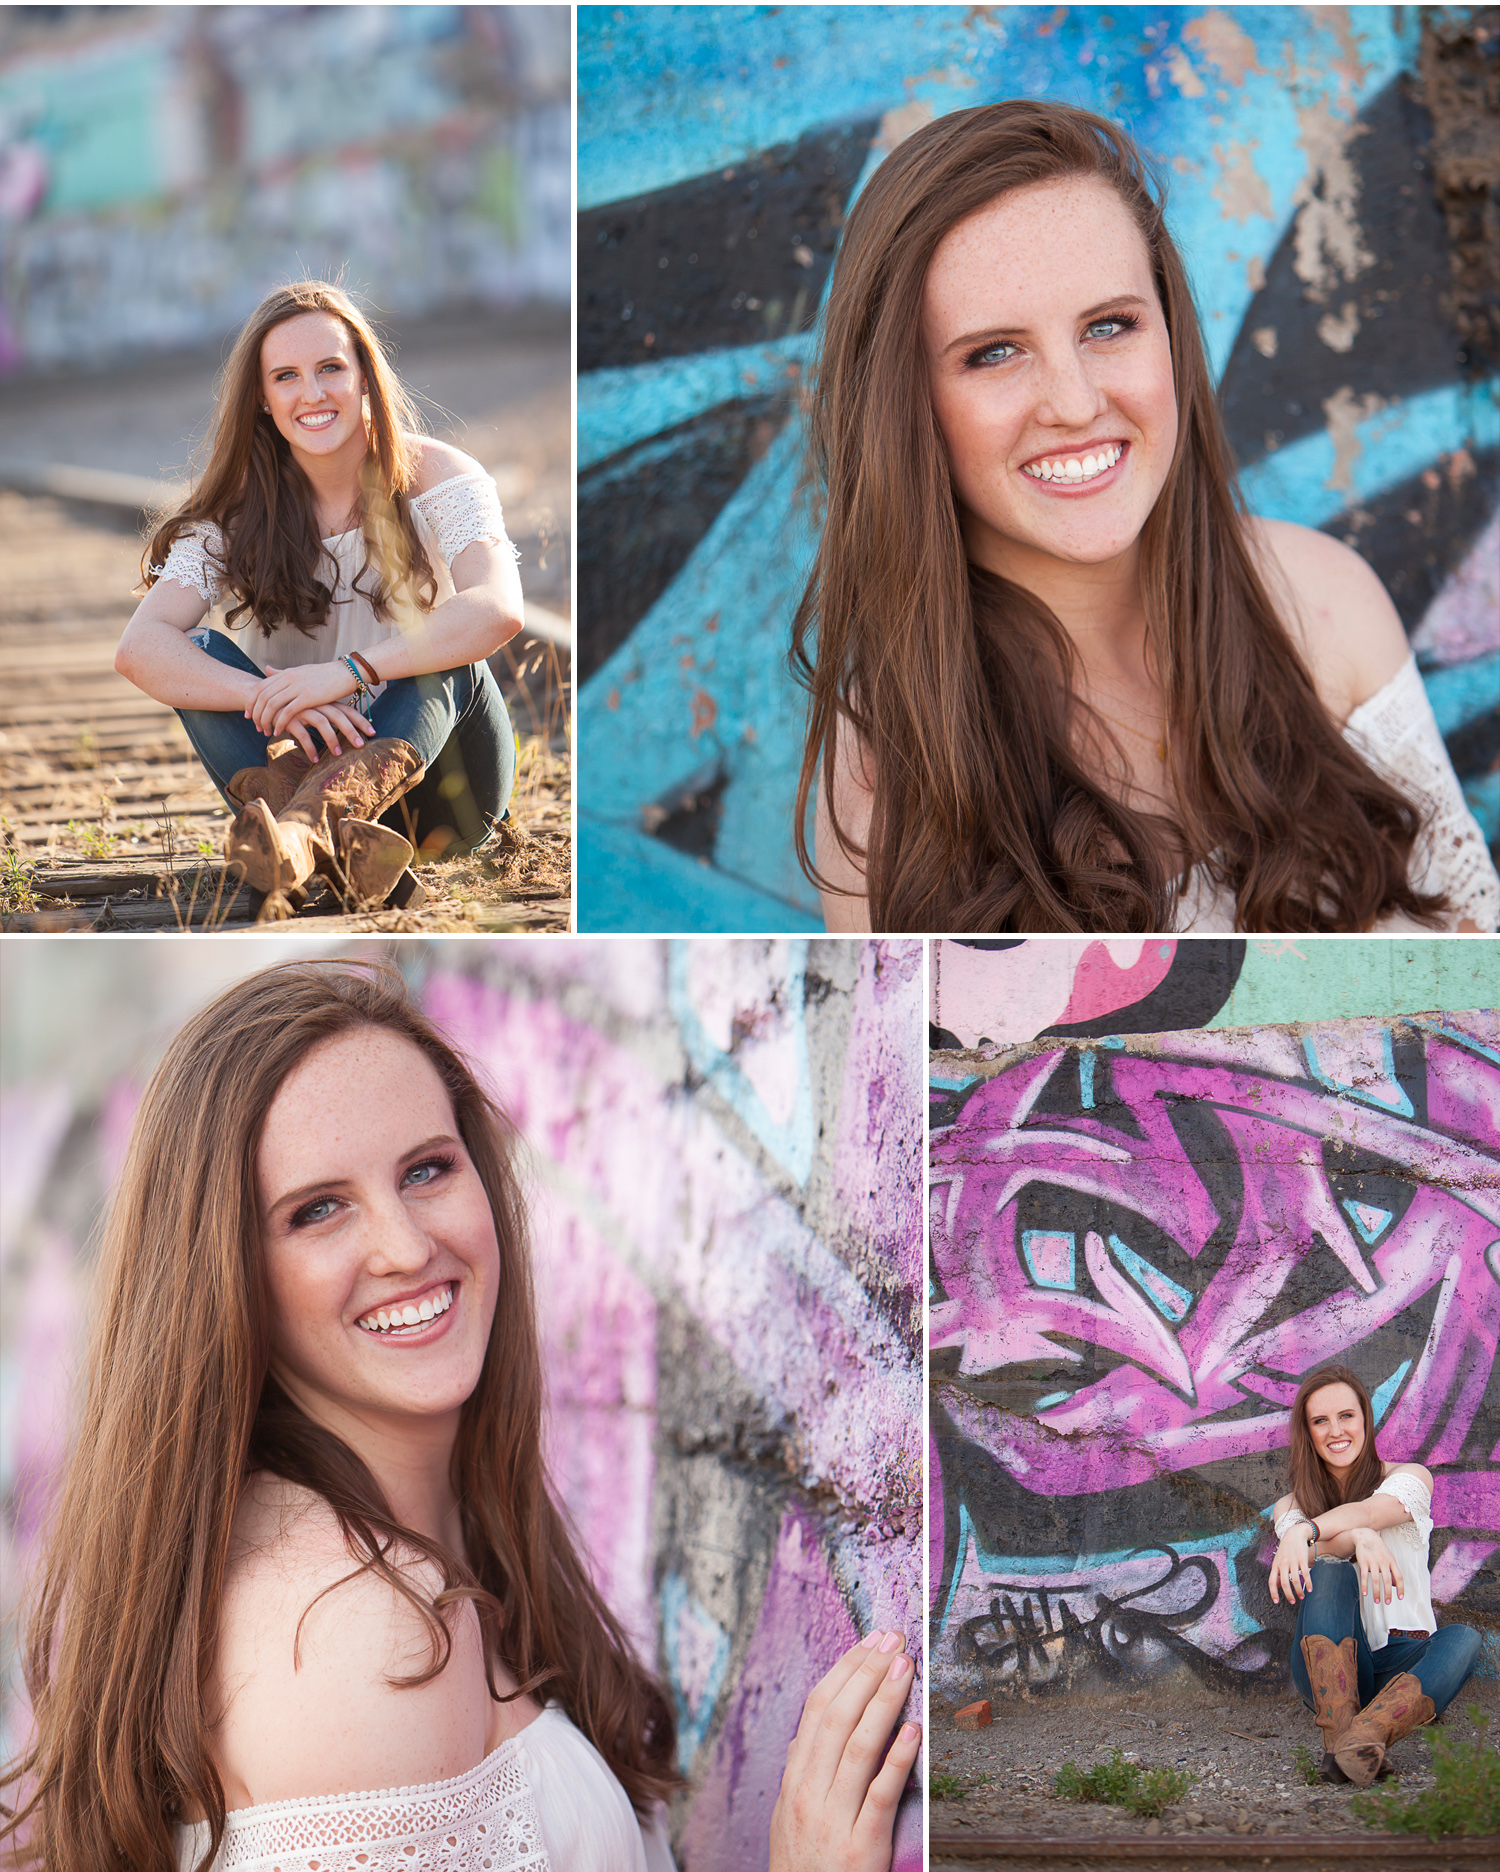 High School Senior Portraits of auburn haired girl laughing in front graffiti wall in Denver. Photographer Jennifer Koskinen, Merritt Design Photo